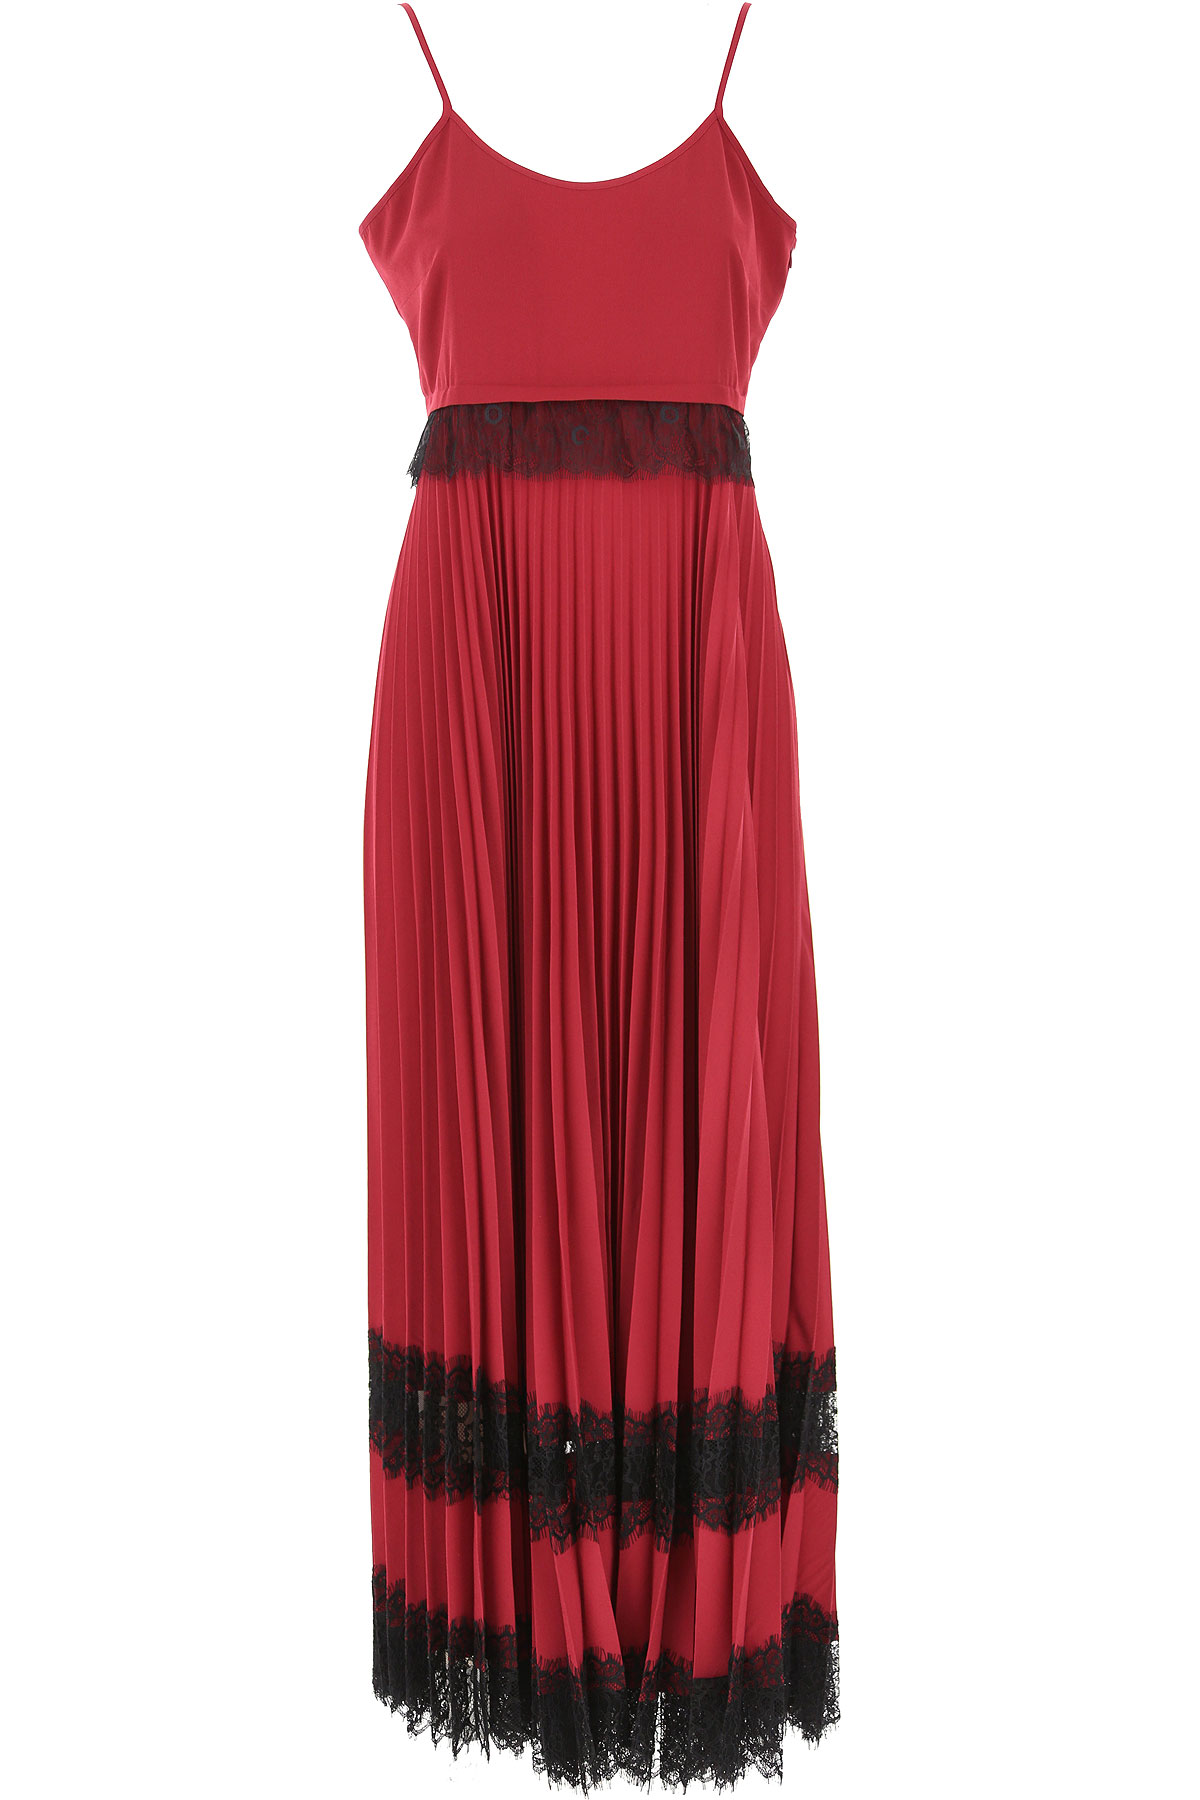 Twin Set by Simona Barbieri Dress for Women, Evening Cocktail Party On Sale, Beet Red, polyester, 2019, 1 (S - 40/42) 2 (M - 42/44) 3 (L - 44/46)